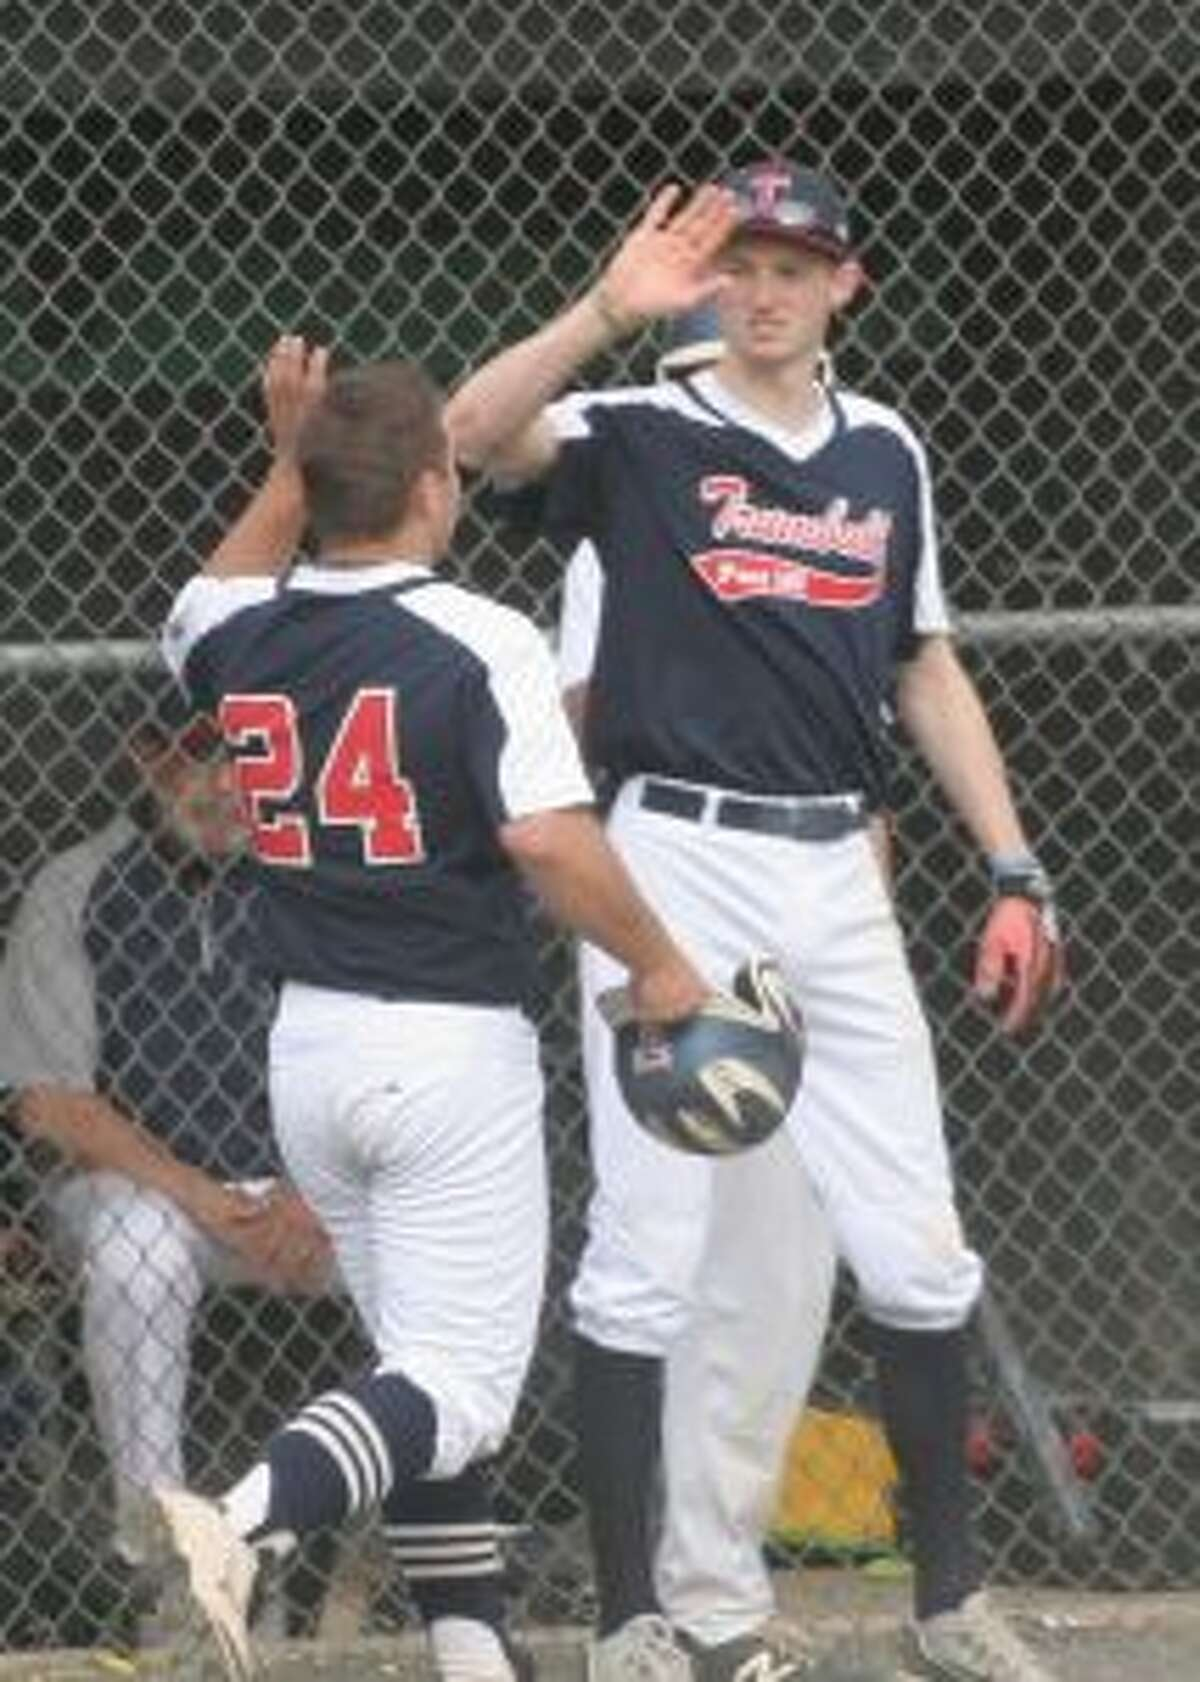 Trumbull banged out 16 hits in the win over Norwalk. - Bill Bloxsom photo